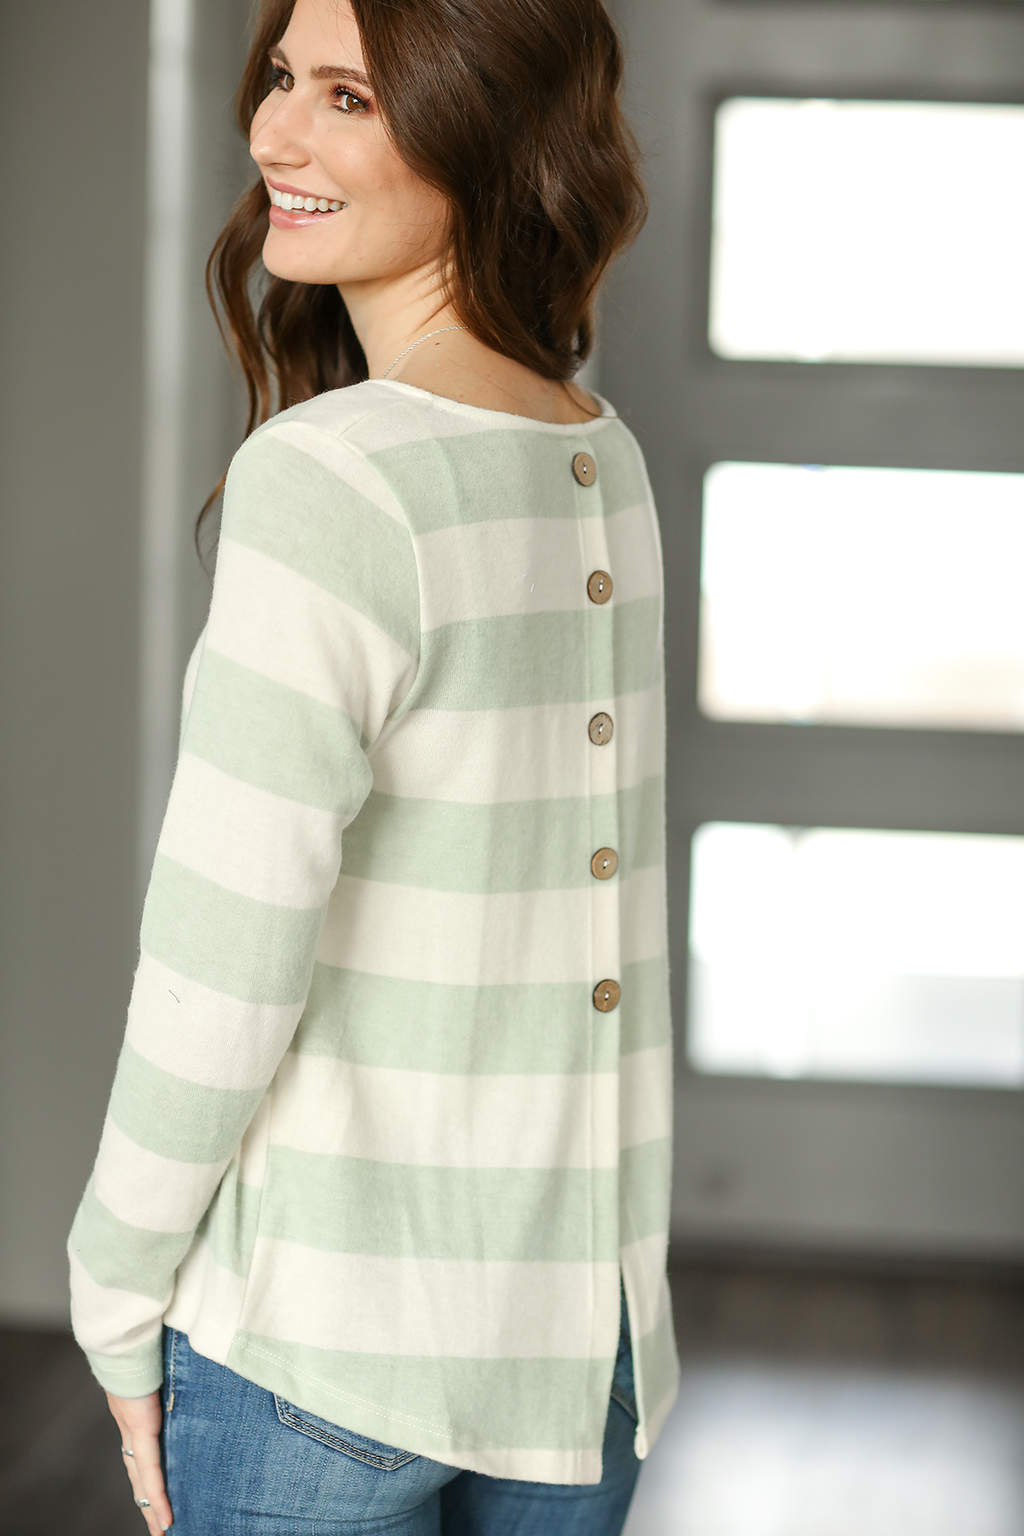 You Just Know Striped Top in Sage and Ivory